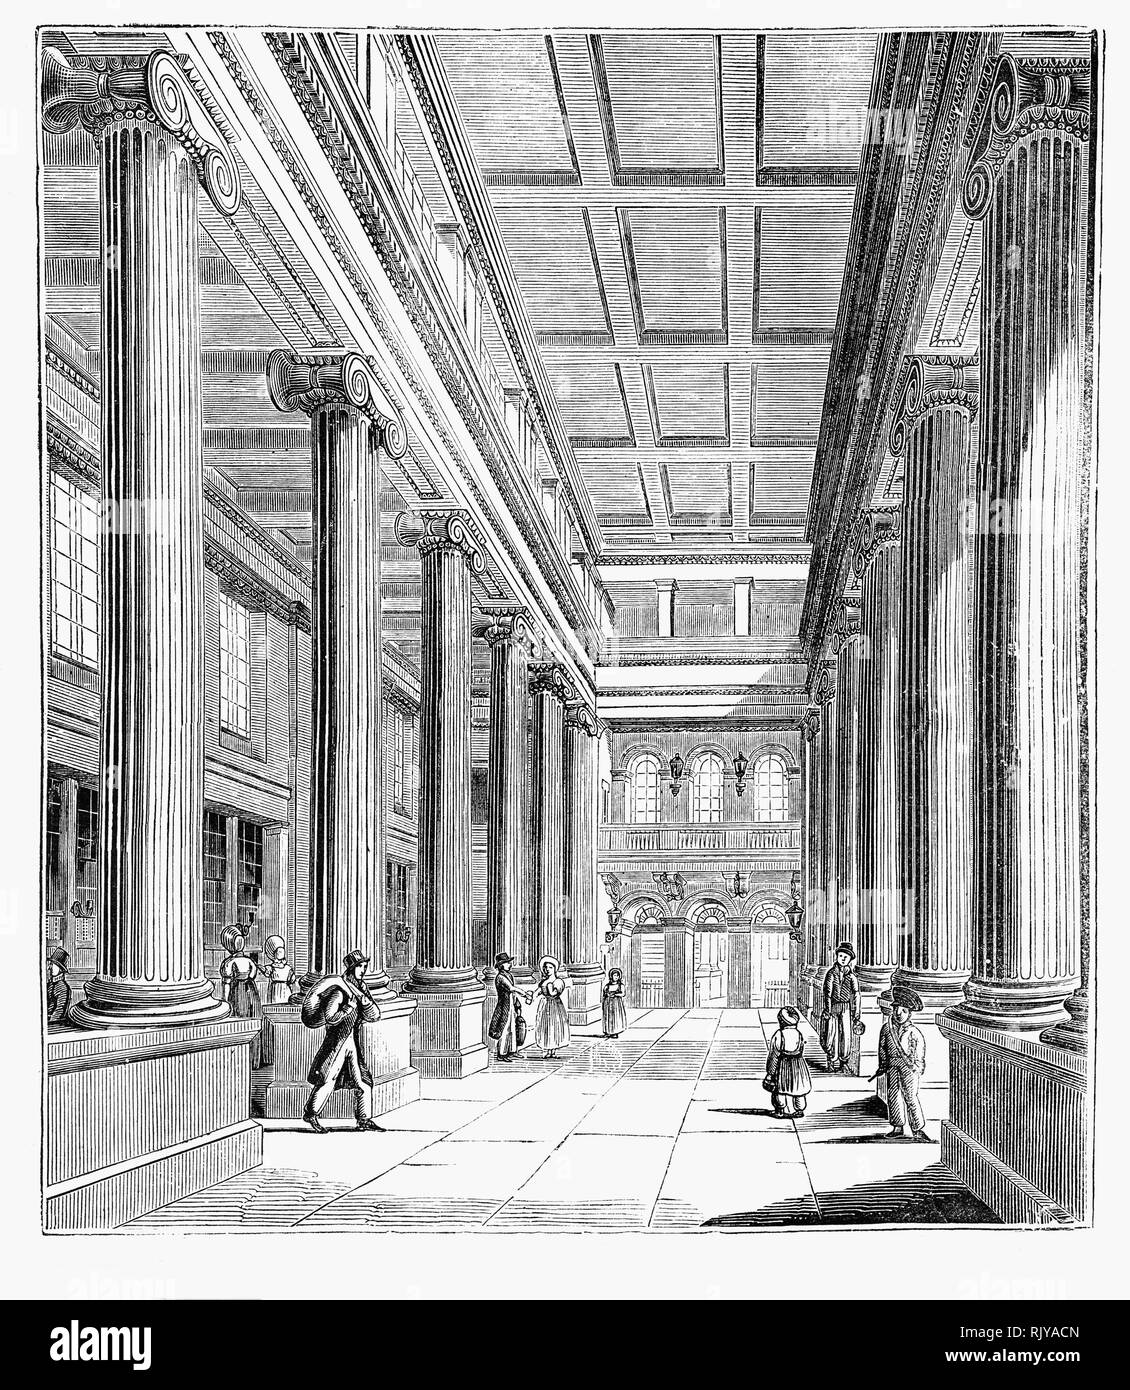 The hall of the General Post Office built on the eastern side of St. Martin's Le Grand in the City of London between 1825 and 1829, to designs by Robert Smirke, was the main post office for London between 1829 and 1910, the headquarters of the General Post Office of the United Kingdom of Great Britain and Ireland, and England's first purpose-built post office. It was demolished in 1912. - Stock Image